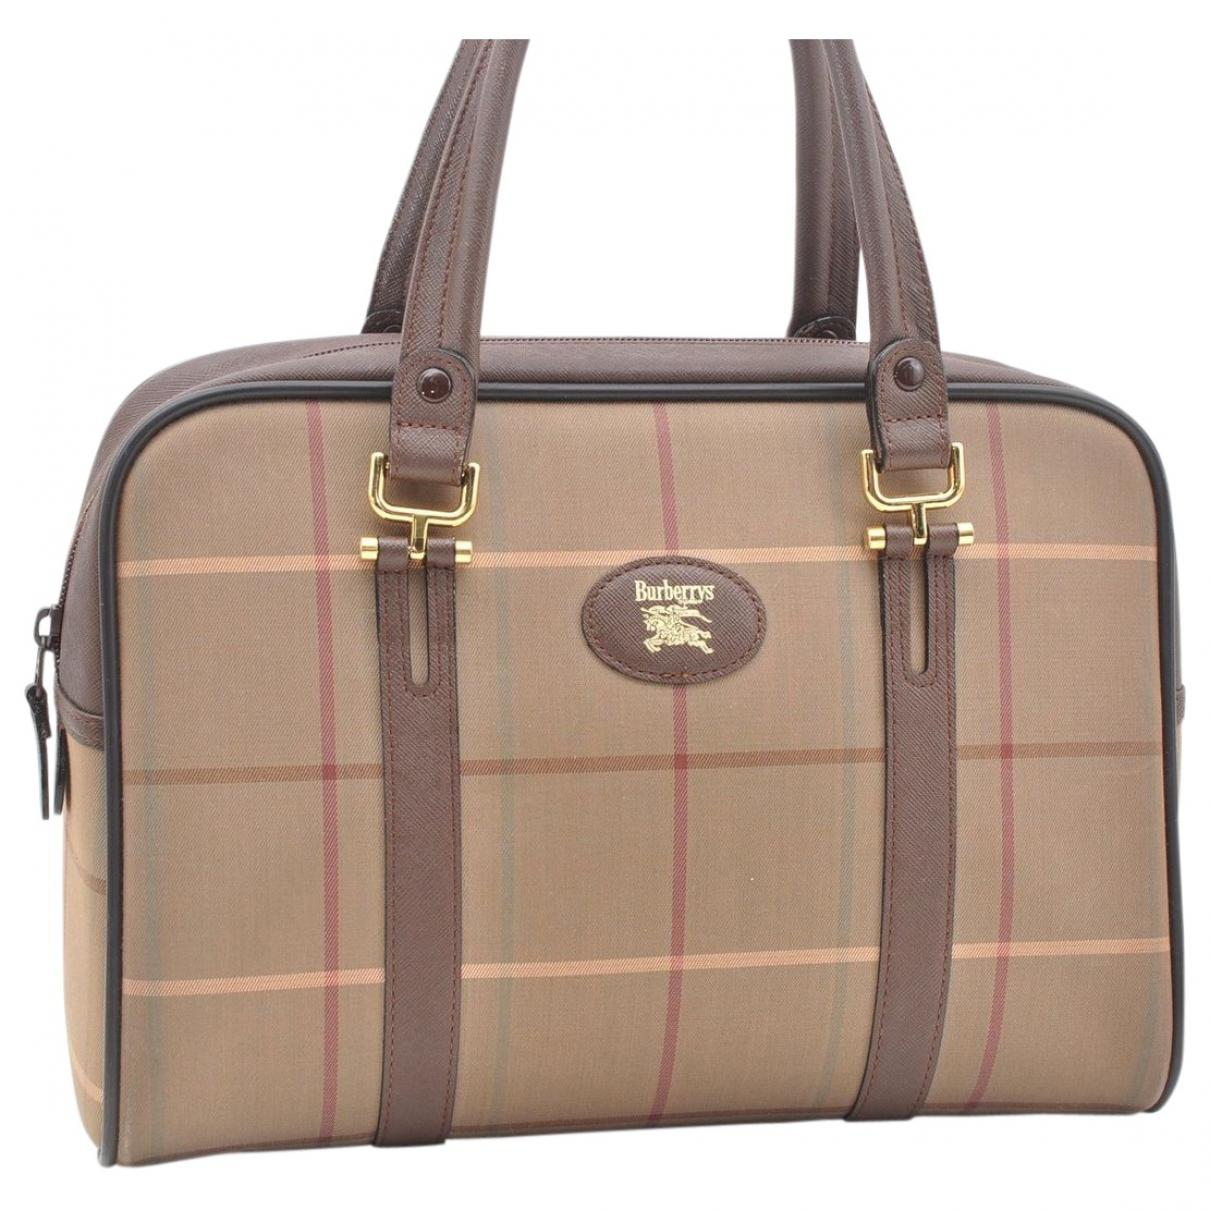 103fdeb04b0a Burberry. Women s Natural Pre-owned Vintage Beige Cloth Handbag. £174 From Vestiaire  Collective